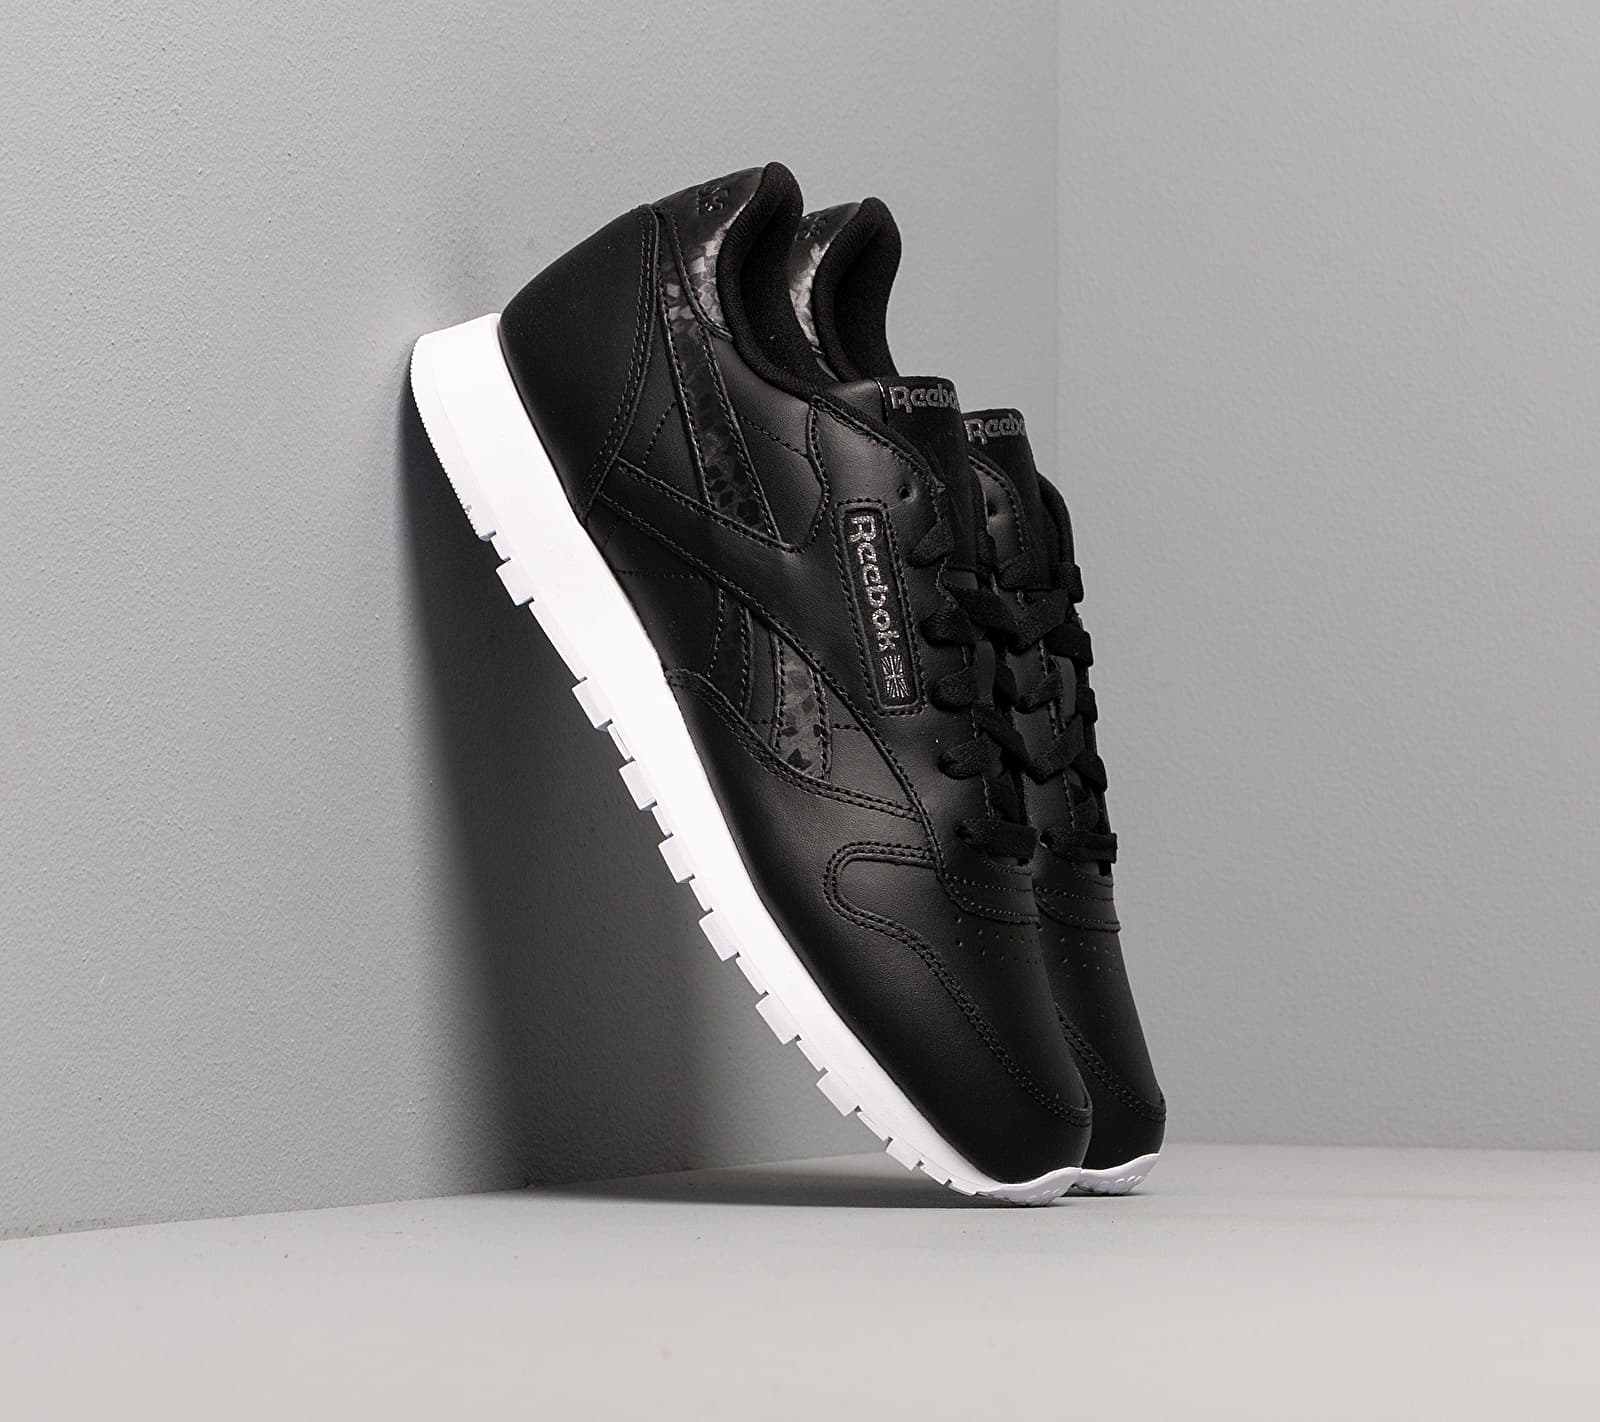 Reebok Classic Leather Black/ Black/ White EUR 38.5